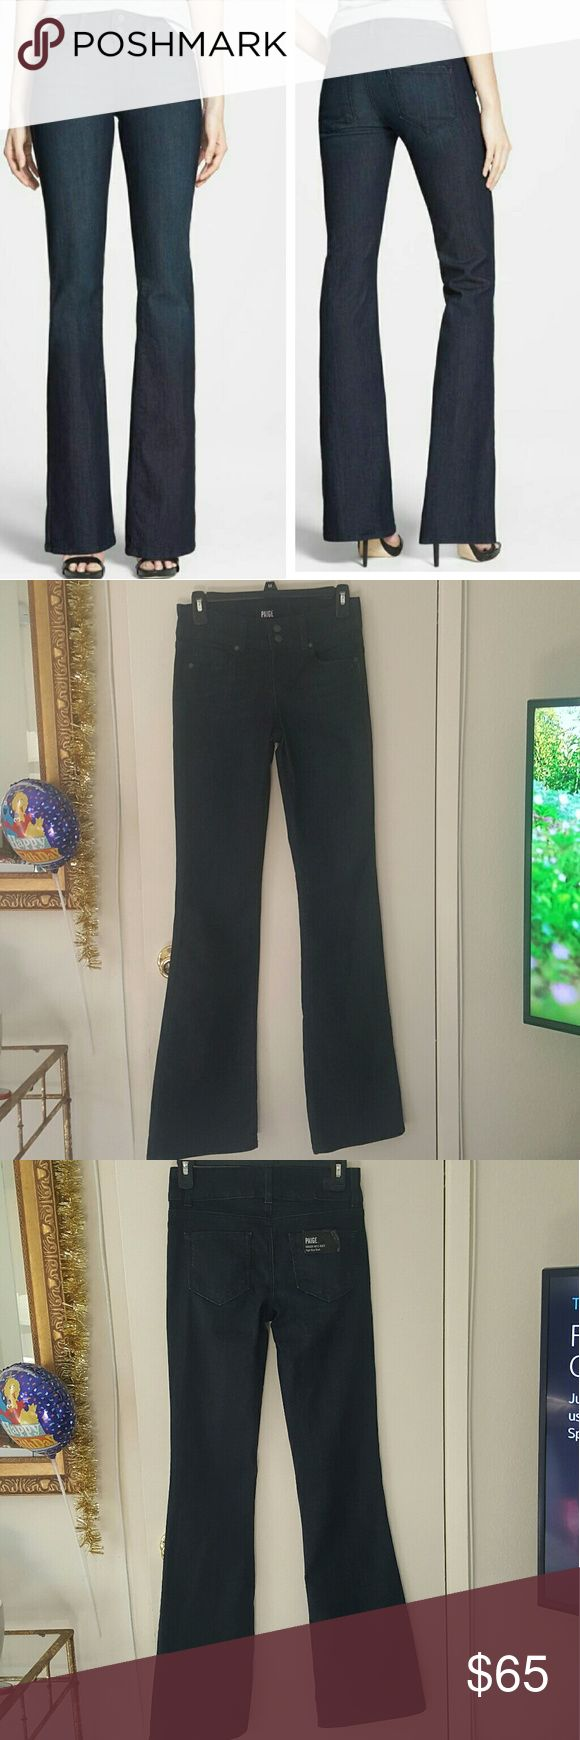 "New Paige ""Hidden Hills"" bootcut jeans size 26 I loveee this jeans!! They are perfect. This jeans have a snug fit and they are stretchy and fit like a glove. The wash is fantastic it's a deep dark indigo wash. Also, they have a wider waistband which makes them extra comfy. Sooo if you want style and comfort these are your jeans. Brand new they don't have the price tag but they still have the tag on the back pocket. Inseam 34"" Rise 8 1/2""  Leg opening 20"" 80% cotton 19% polyester 1% elastane…"